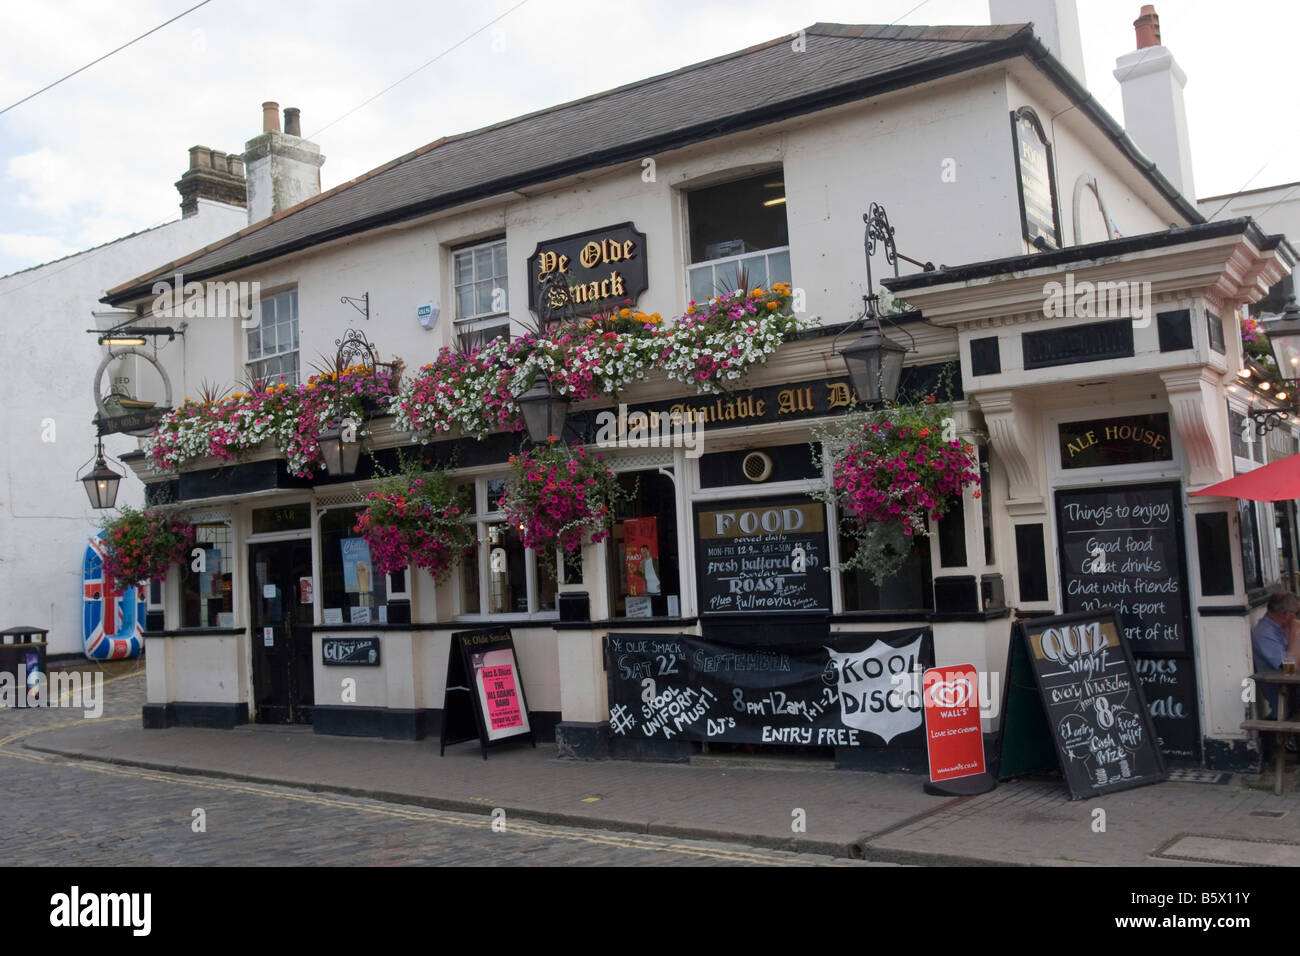 'Ye Olde Smack' public house and restaurant, Leigh on Sea Essex GB UK - Stock Image